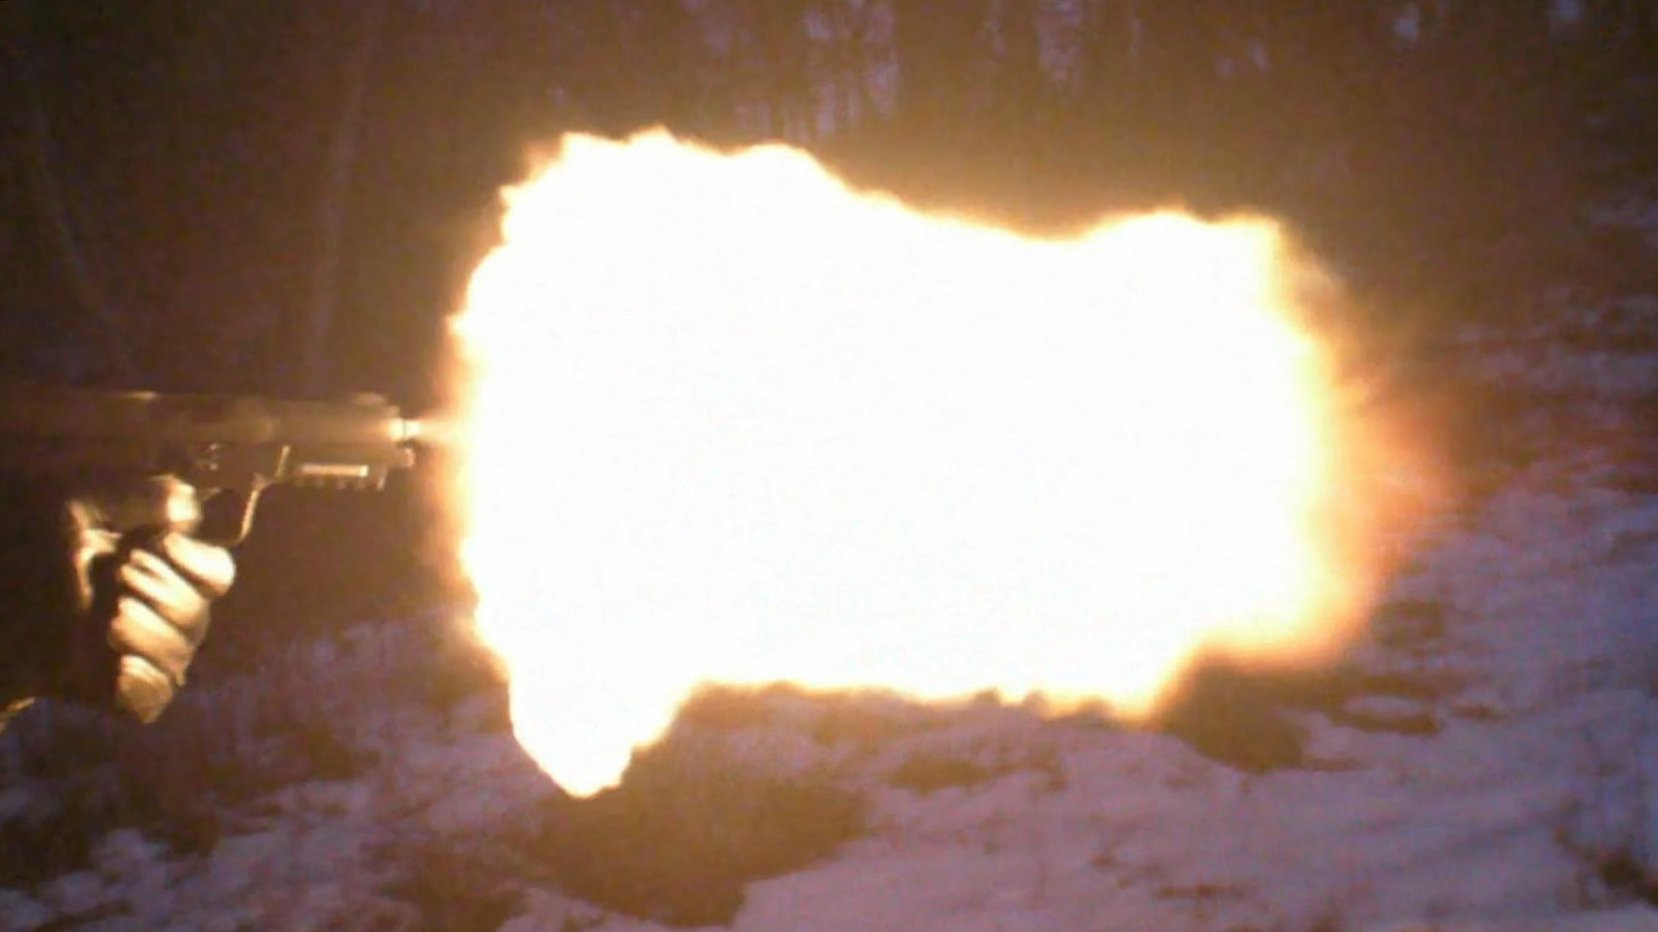 Muzzle flash - Wikipedia